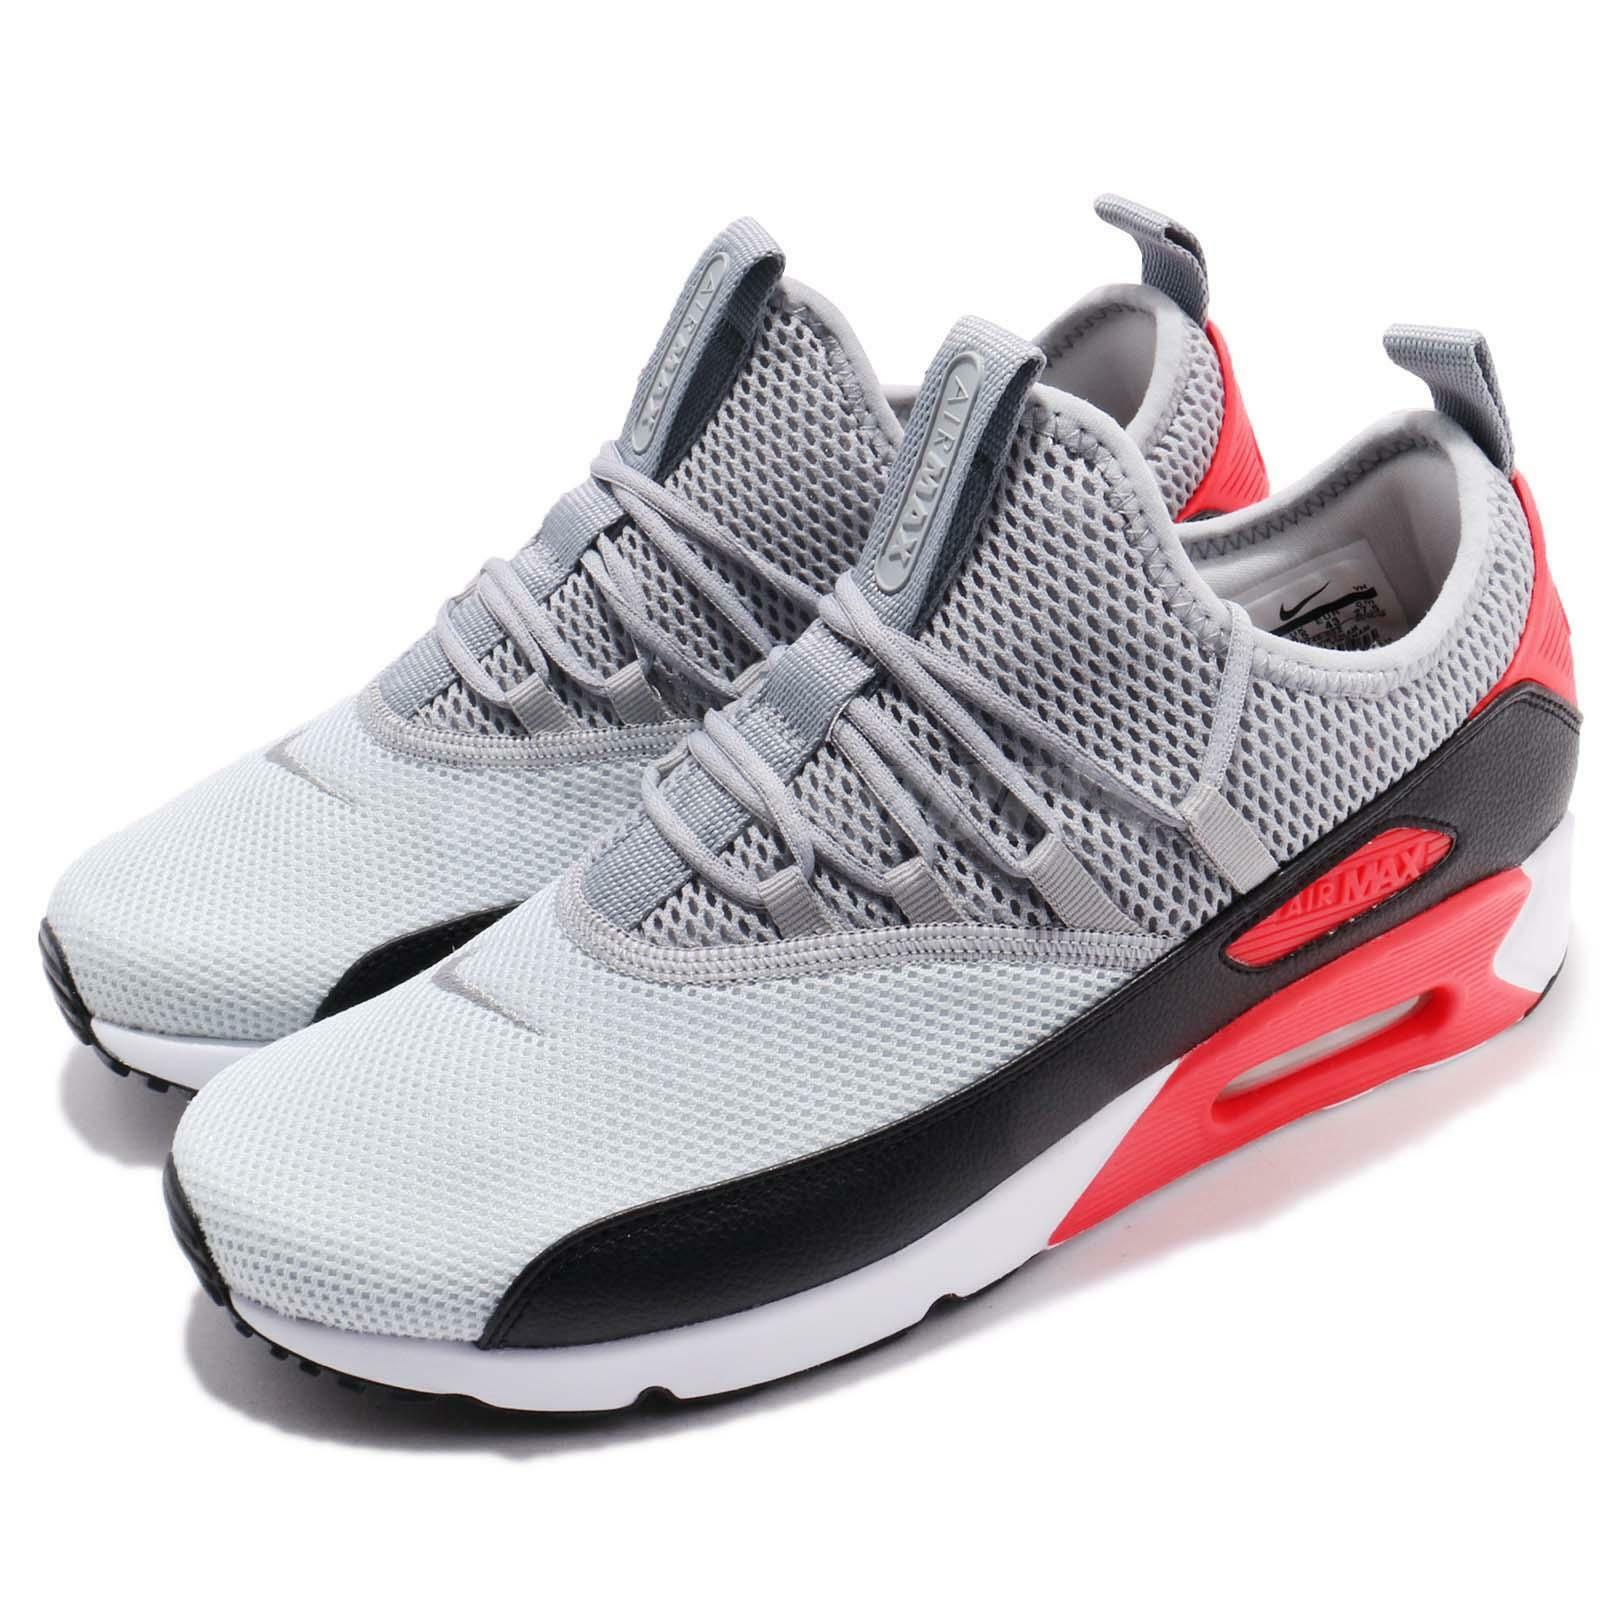 Nike Air Max 90 EZ Grey Black Infrared Red Men Running shoes Sneakers AO1745-002